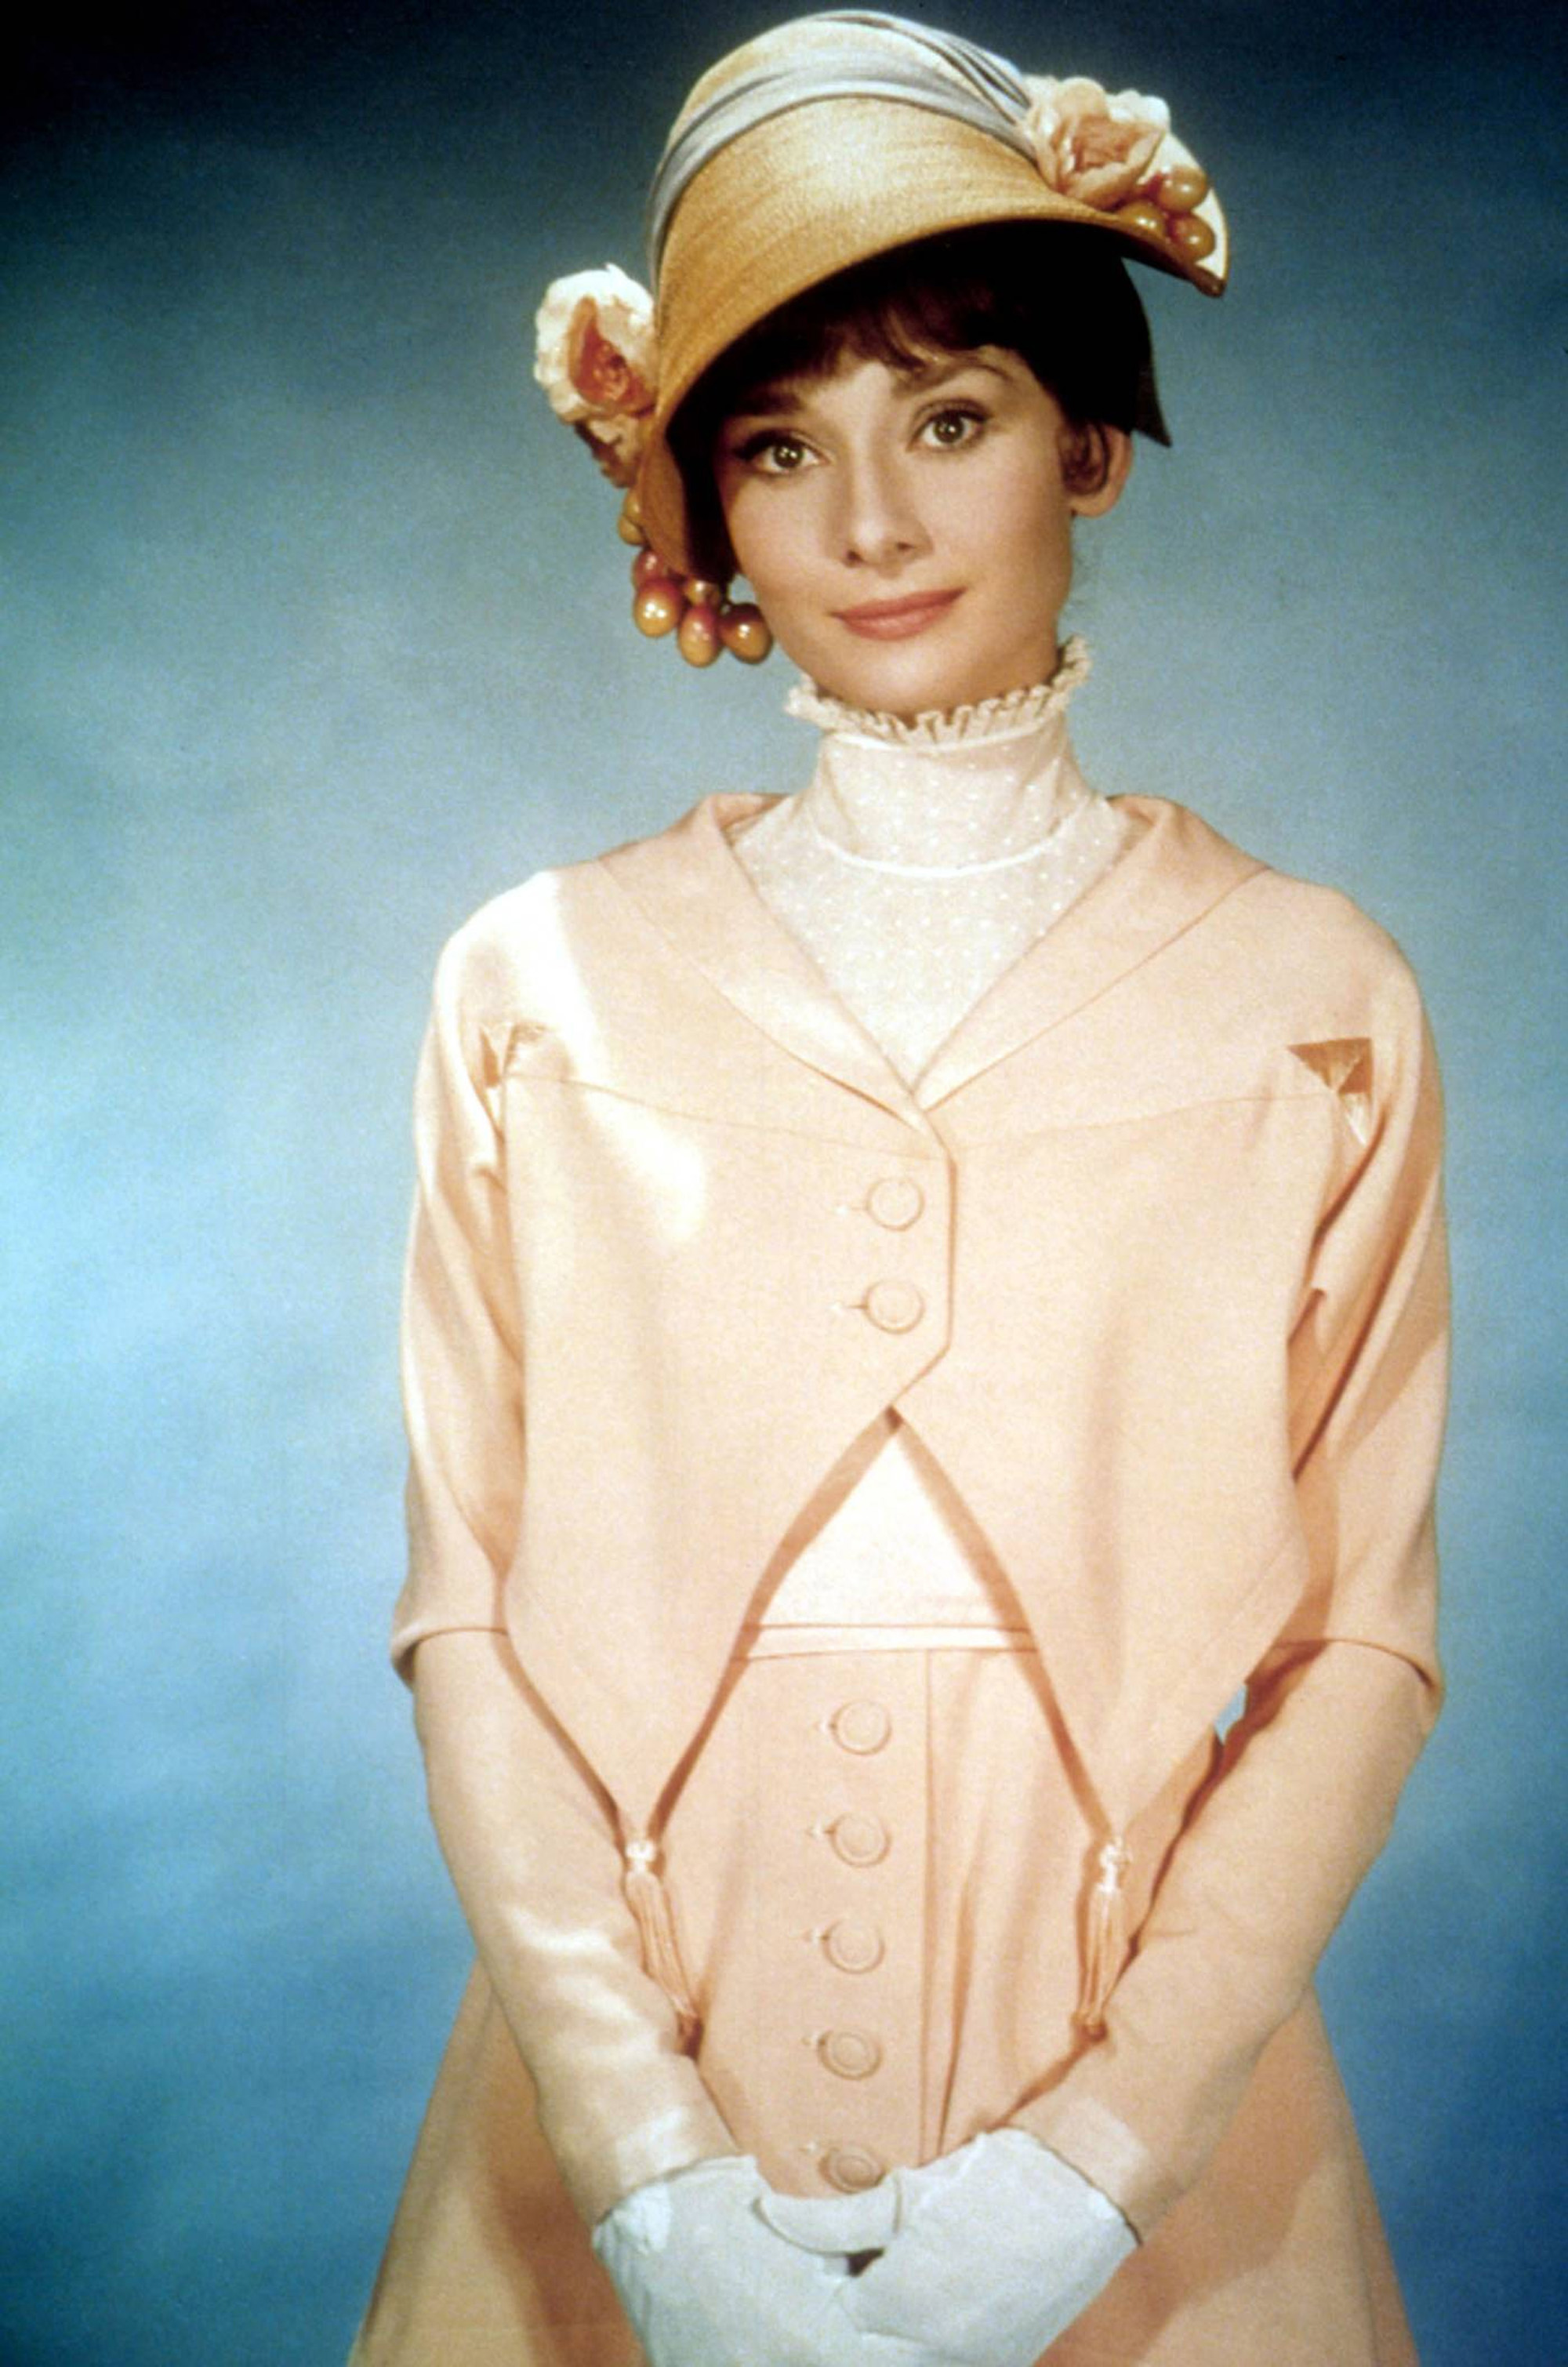 Musical Movie Fashion: My Fair Lady new photo